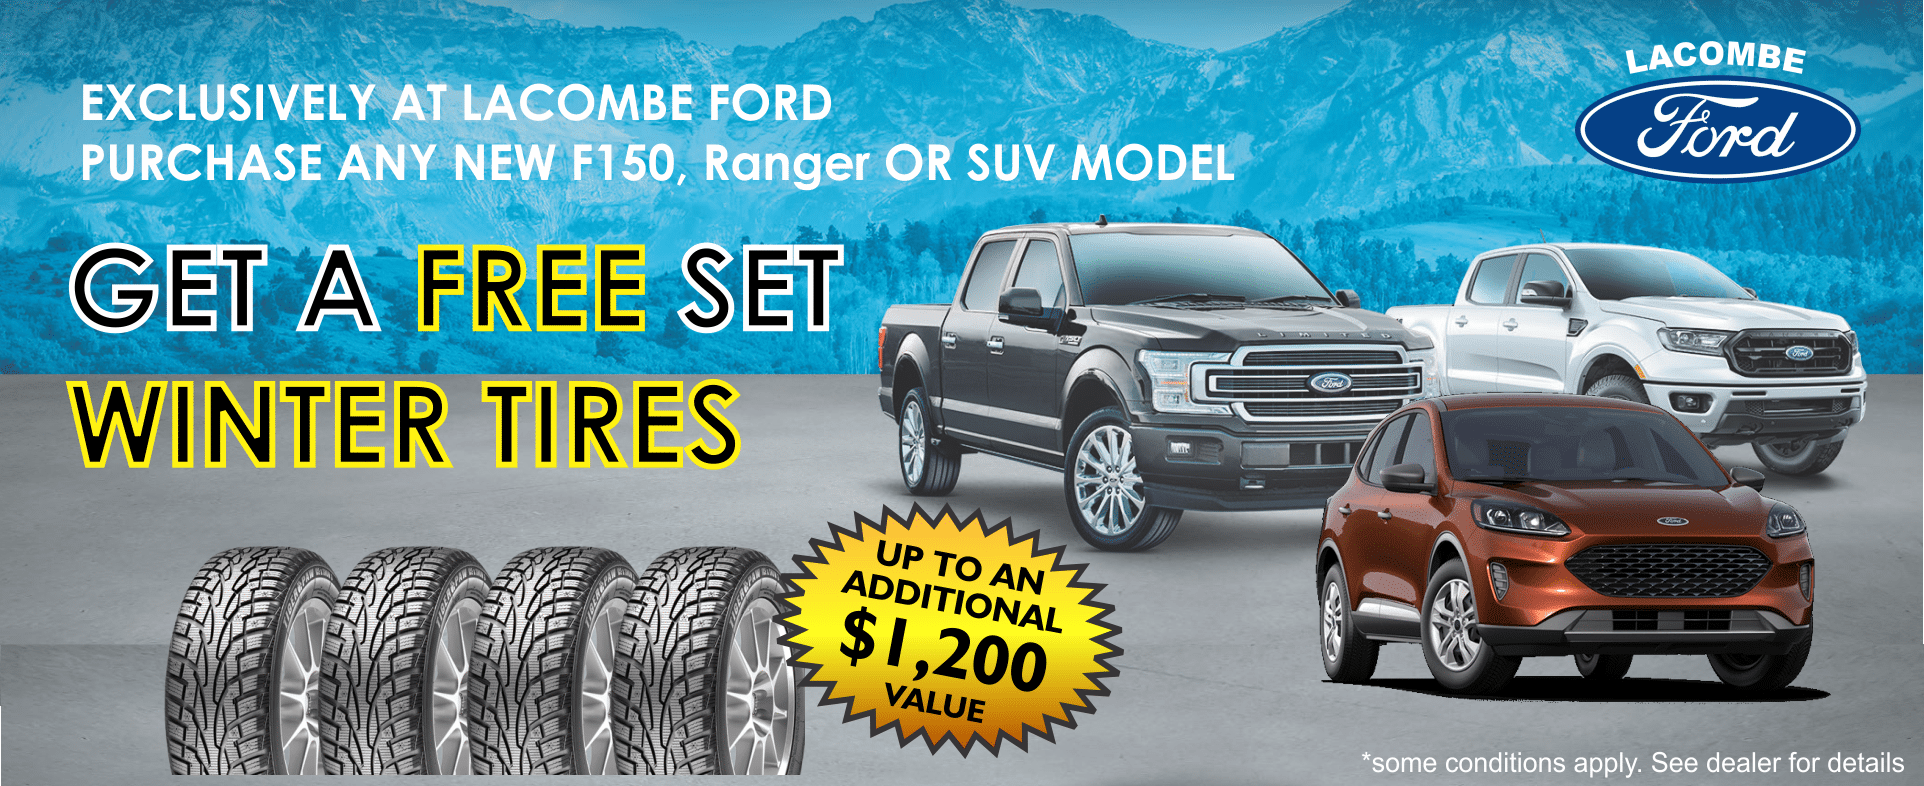 LACOMBE FORD NEW FORDS FOR SALE FREE SET OF WINTER TIRES